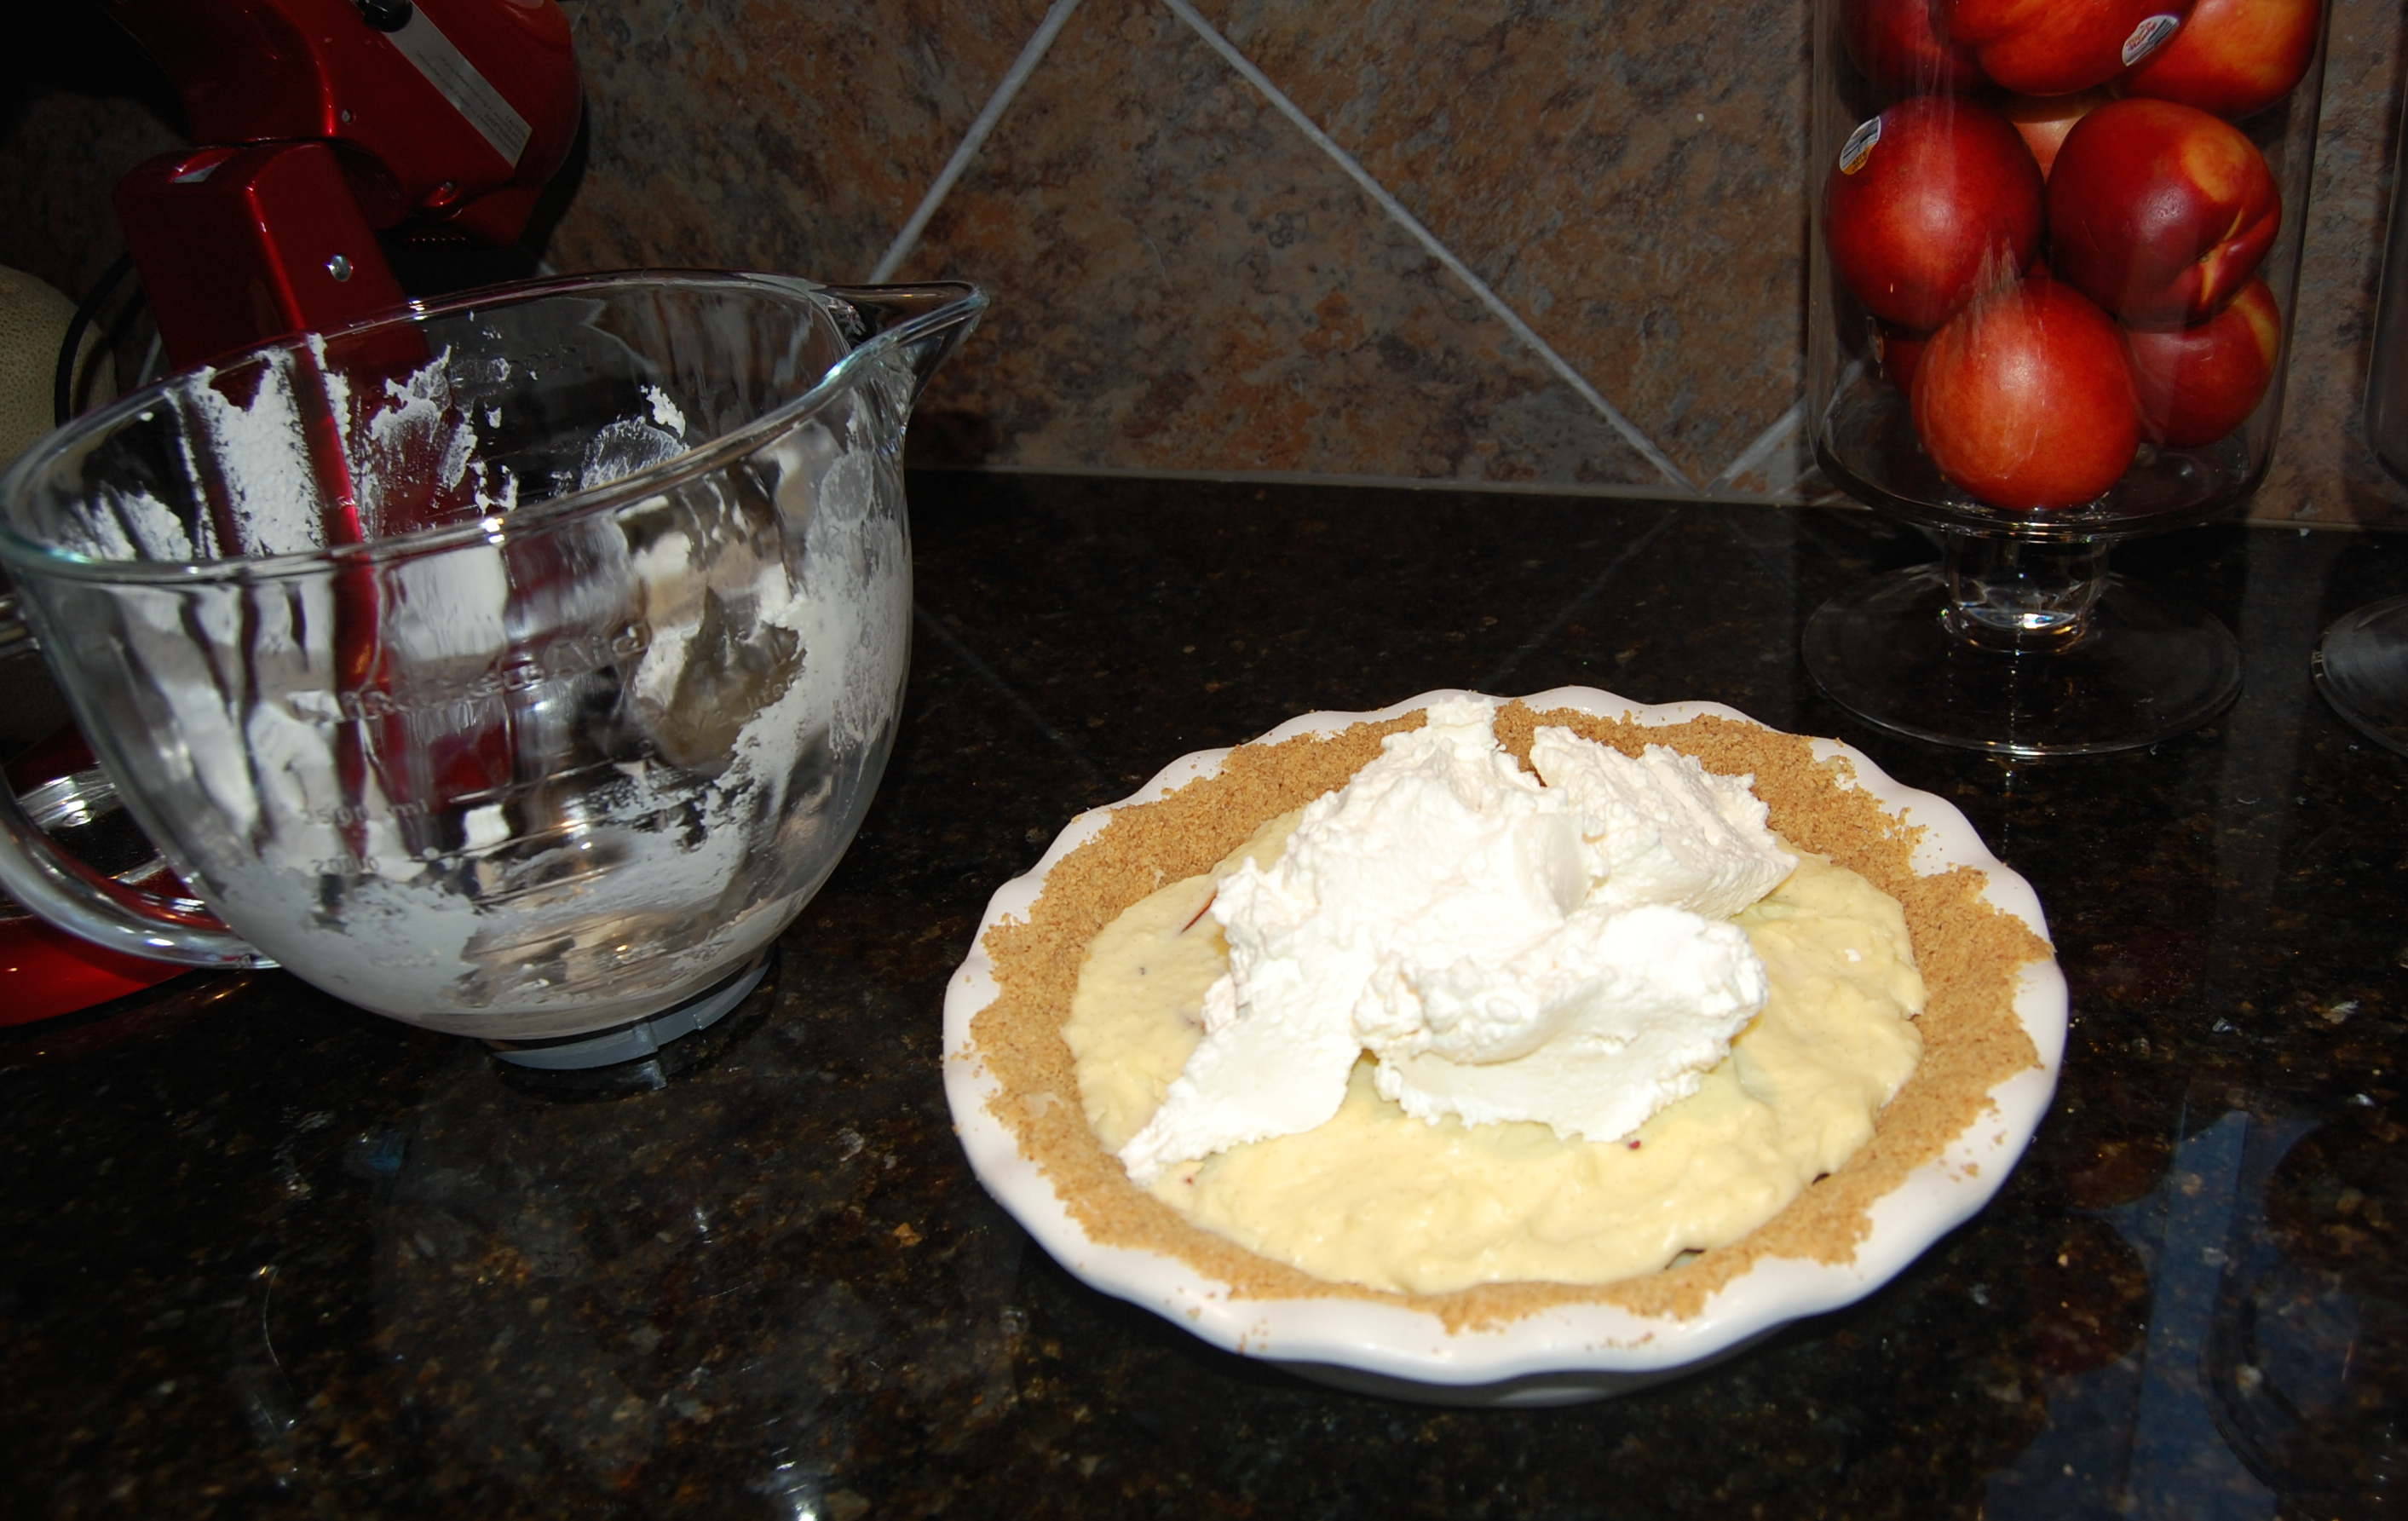 Spreading Whipped Cream on Nectarine White Chocolate Cream Pie